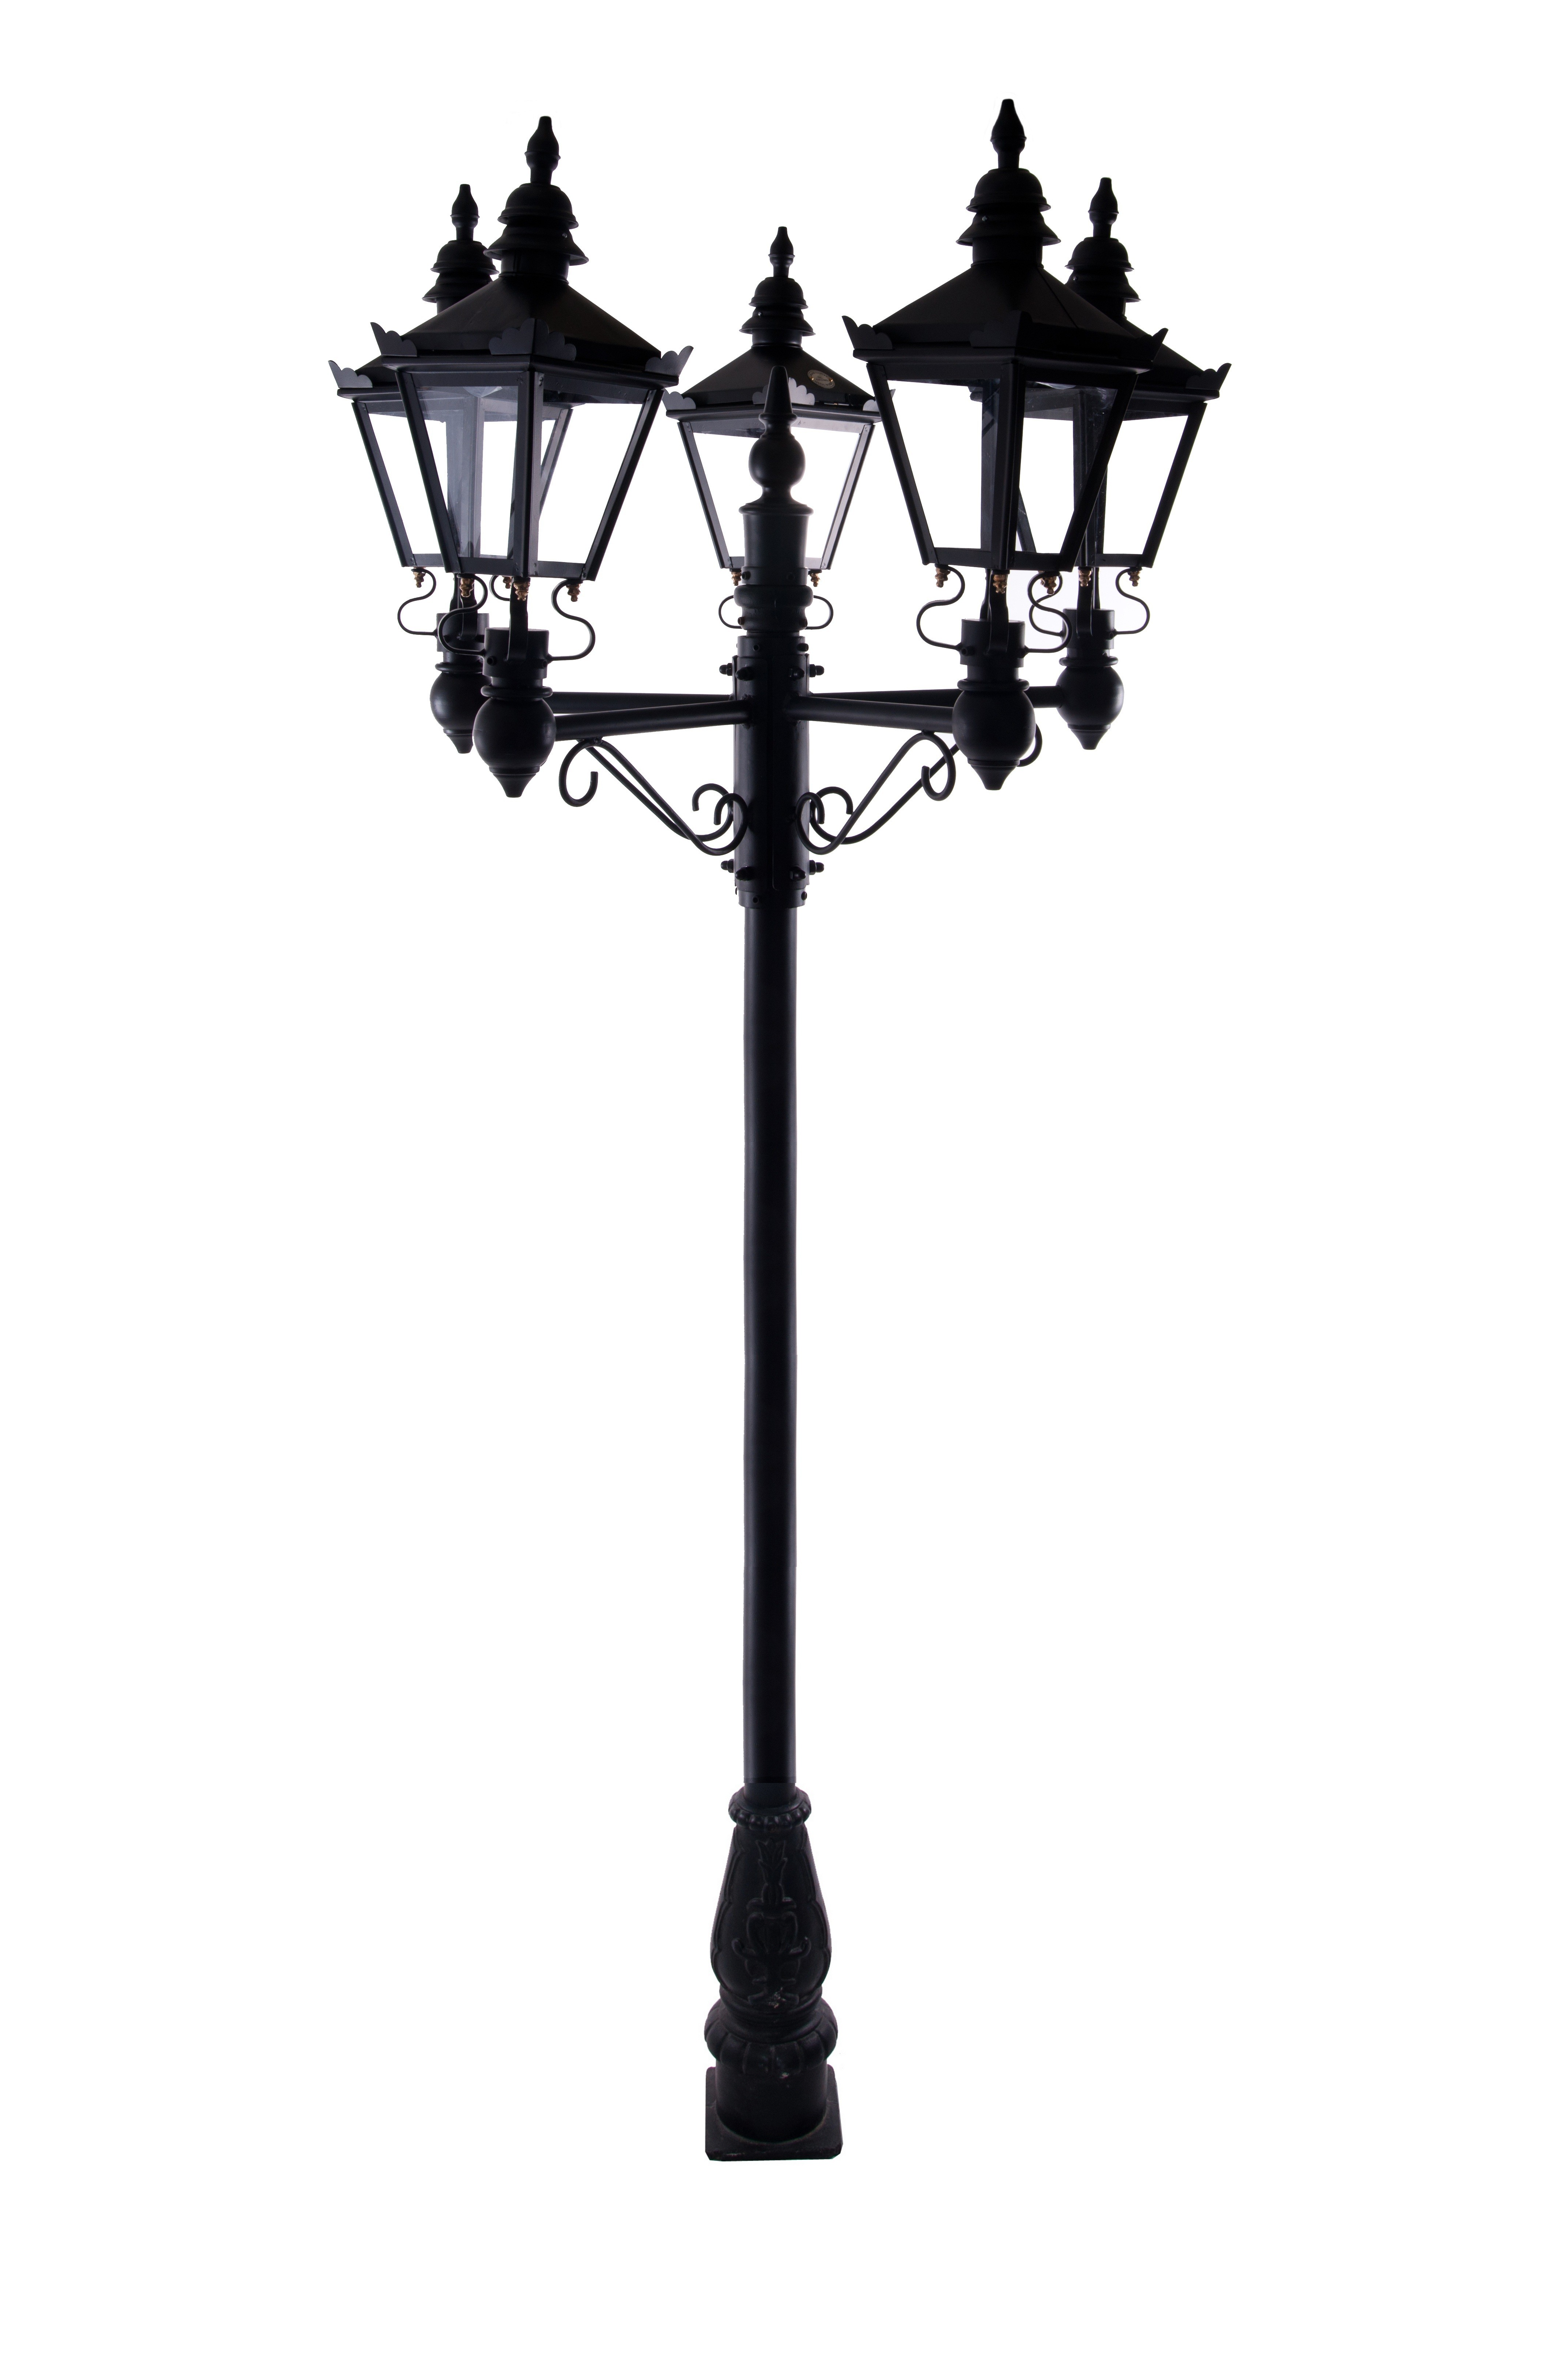 Victorian lamp post clipart clipart royalty free library Free Lamp Post Clipart victorian, Download Free Clip Art on ... clipart royalty free library